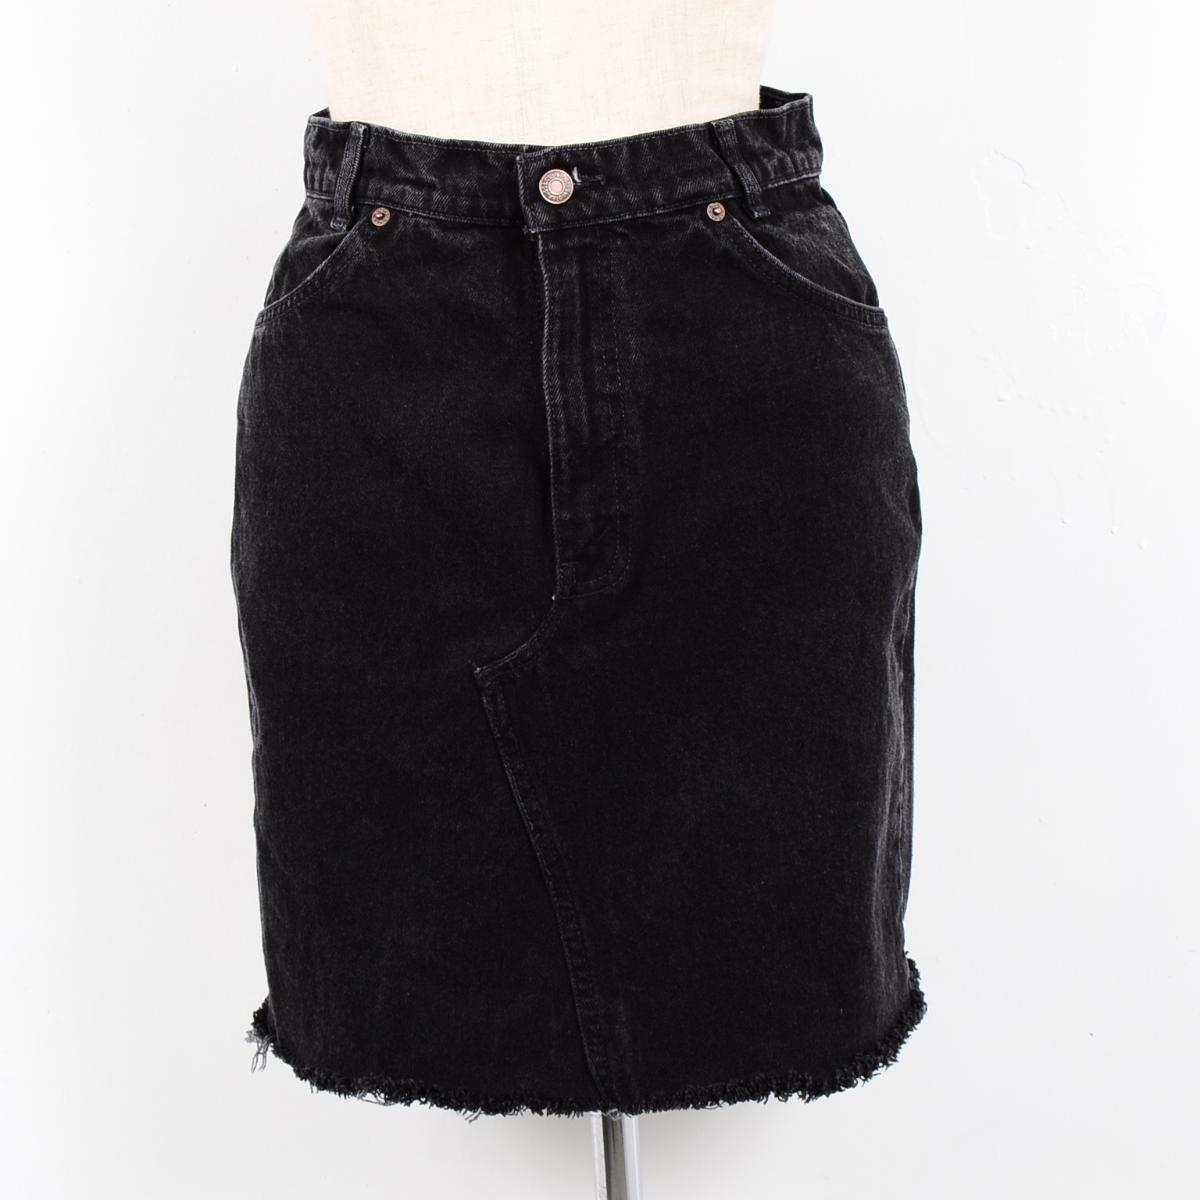 Levis Black Denim Skirt - Dress Ala